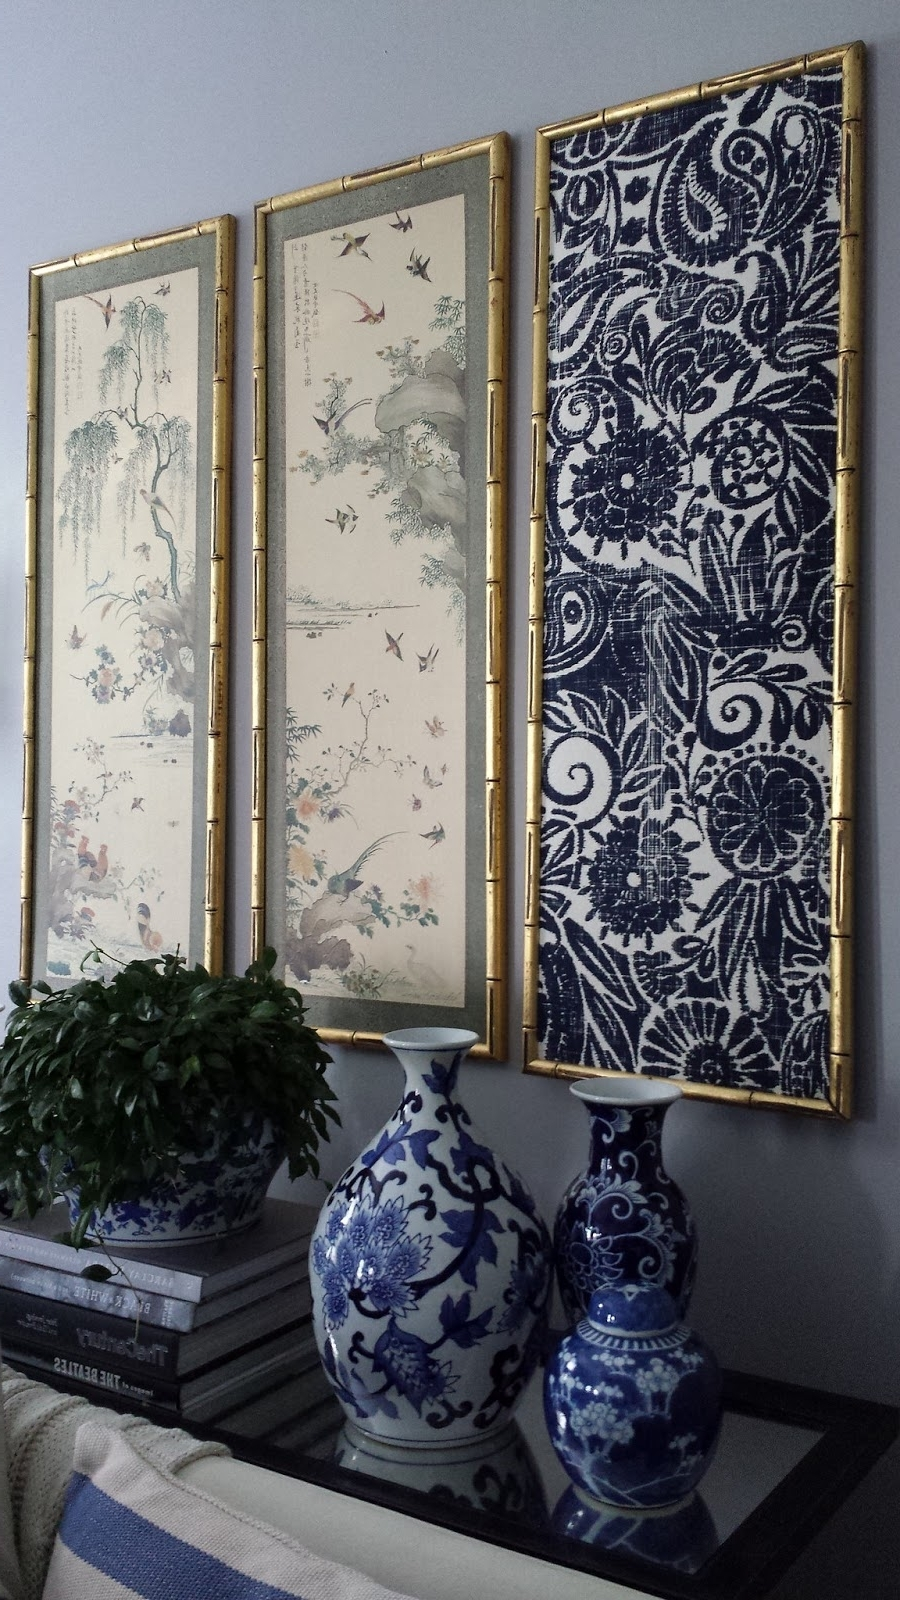 Famous White Fabric Wall Art Inside Focal Point Styling: Diy Indigo Wall Art With Framed Fabric (View 3 of 15)